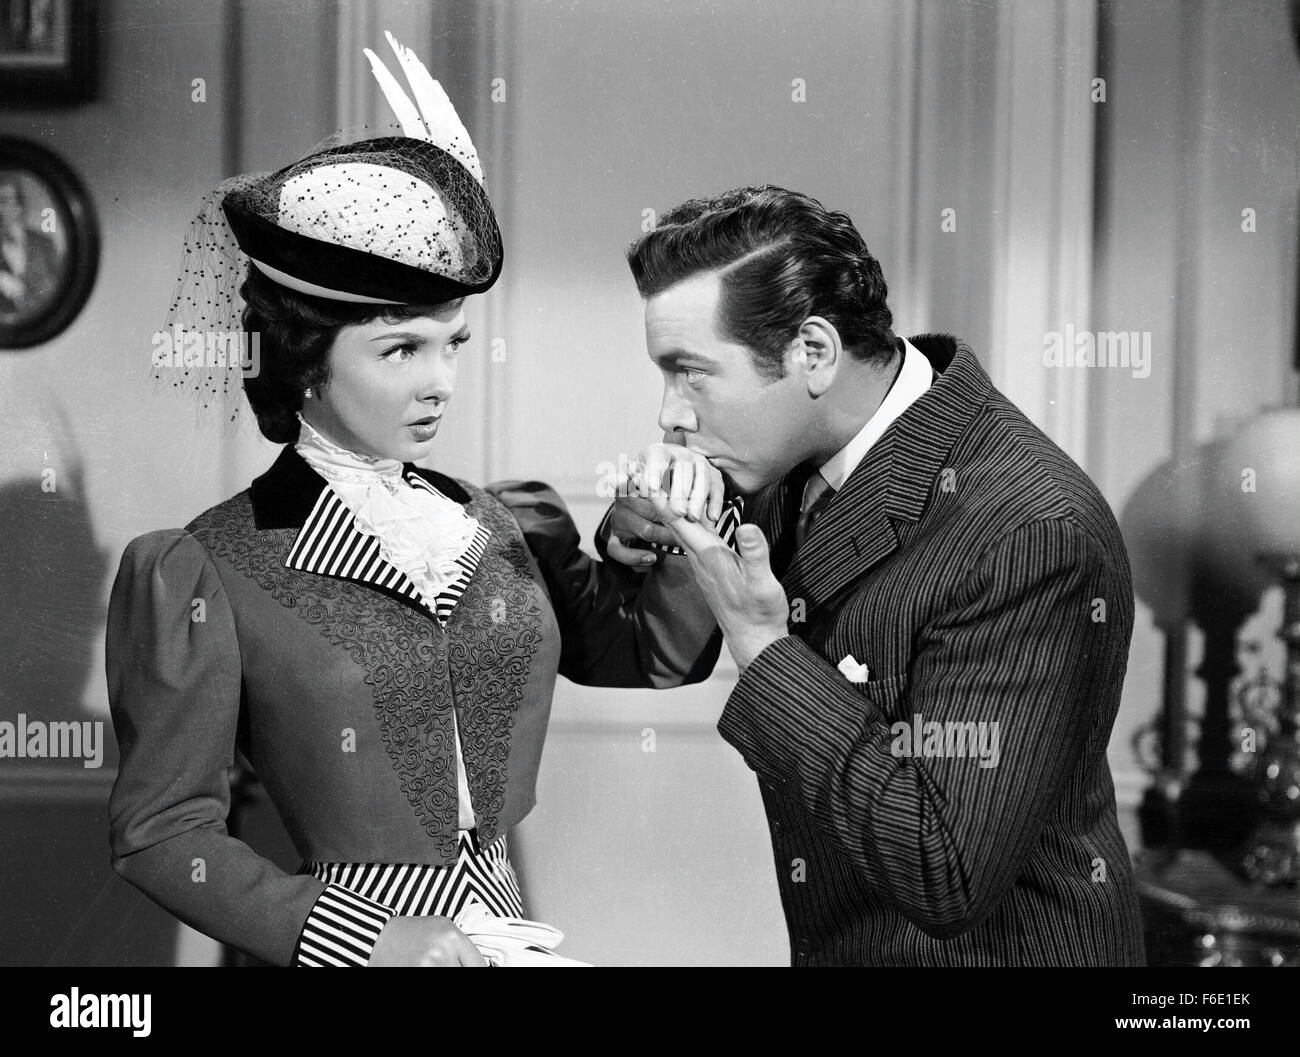 RELEASED: Aug 24, 1950 - Original Film Title: The Toast of New Orleans. PICTURED: KATHRYN GRAYSON and MARIO LANZA. - Stock Image